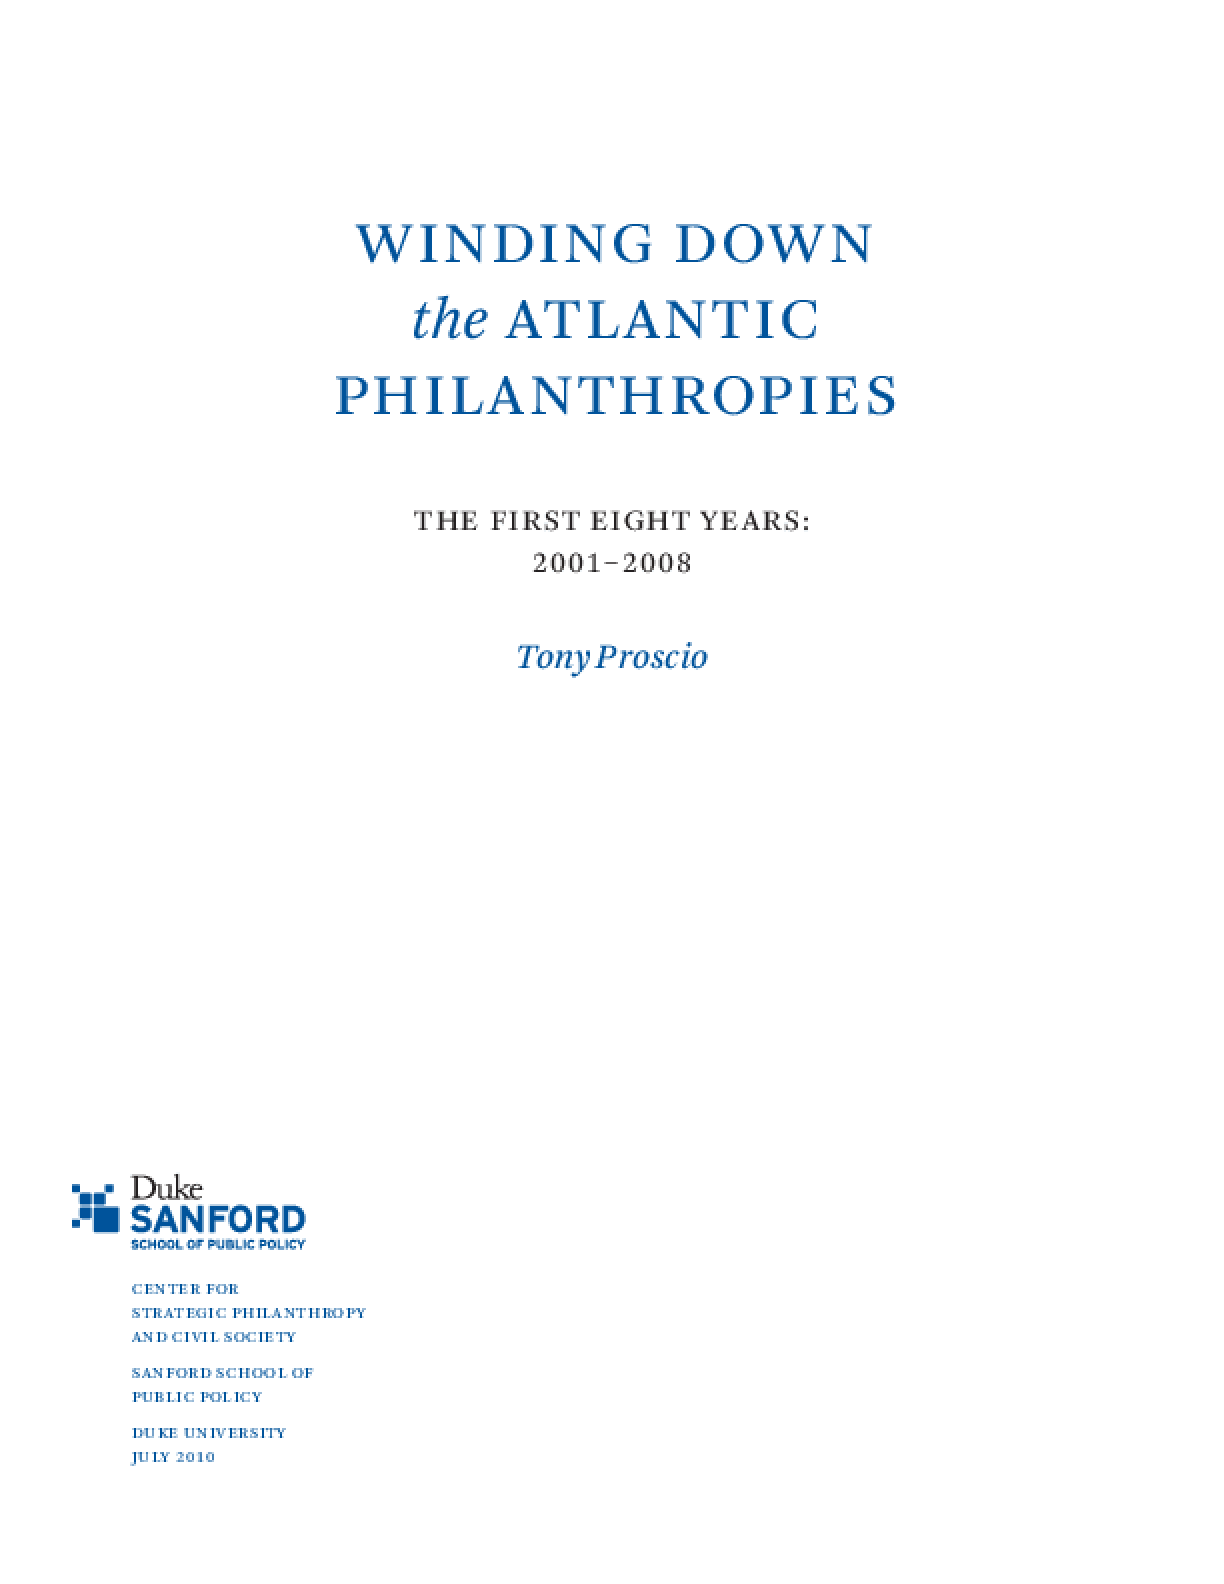 Winding Down the Atlantic Philanthropies: The First Eight Years: 2001-2008